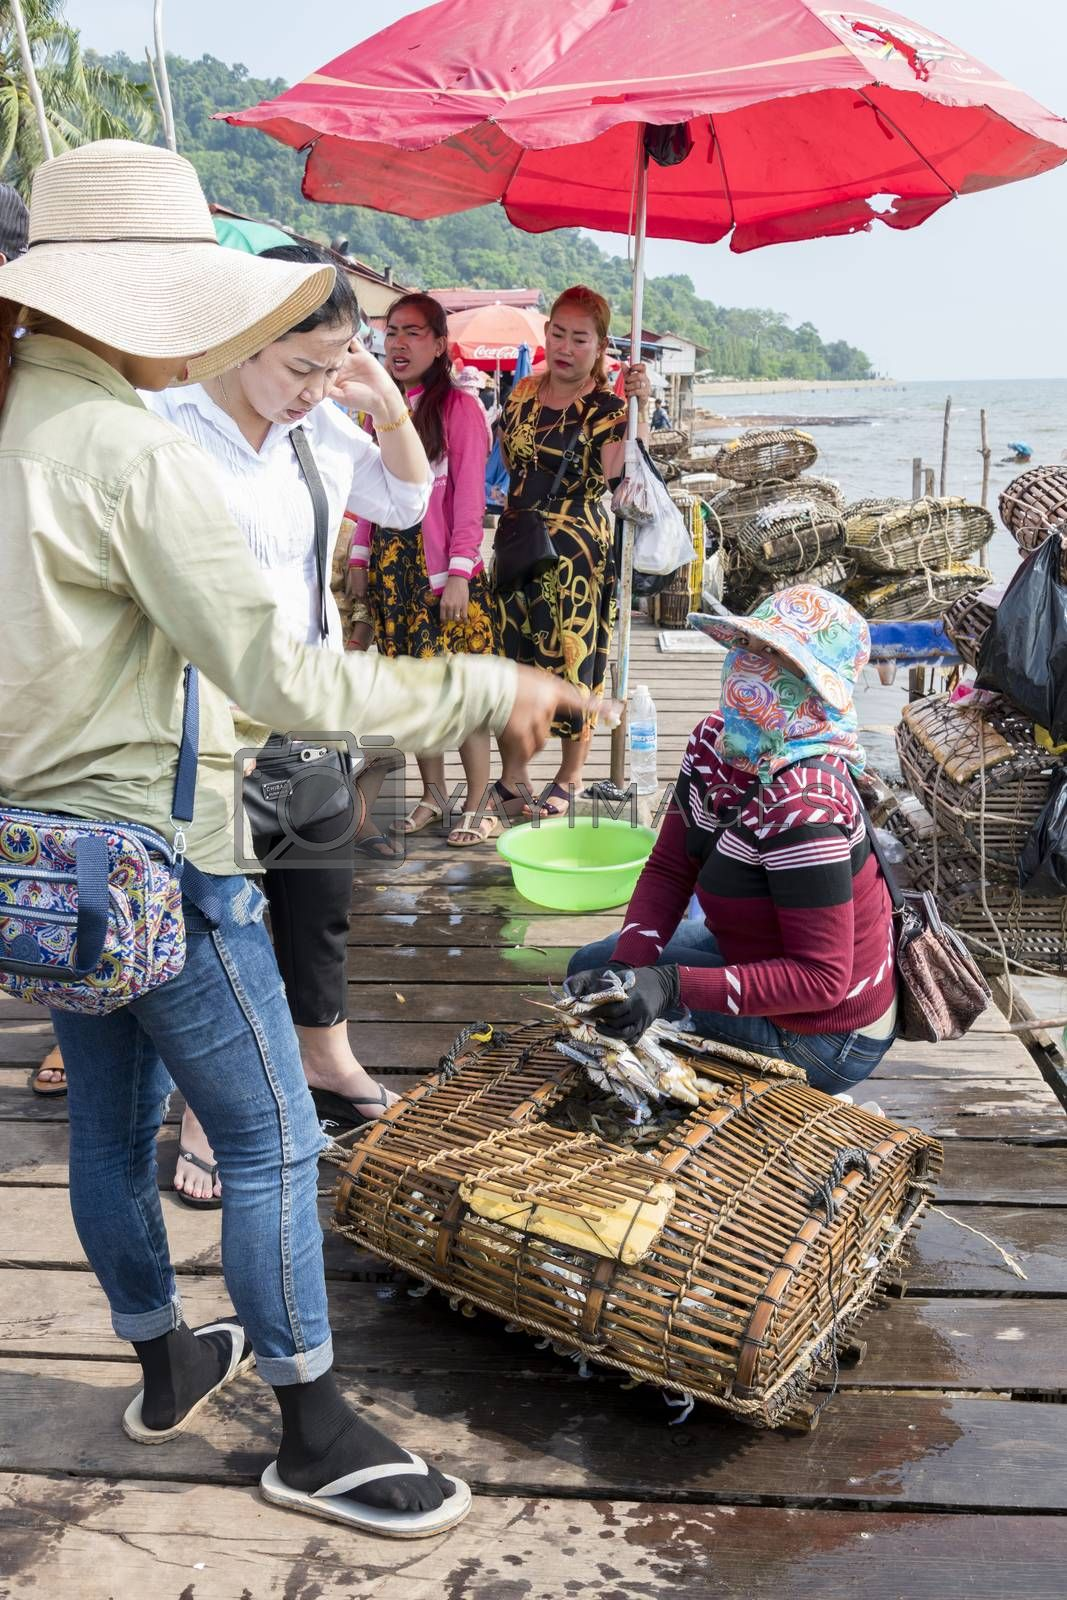 Cambodians ladies buying live crabs at the Crab Market, Krong Kaeb, Kep Province, Cambodia